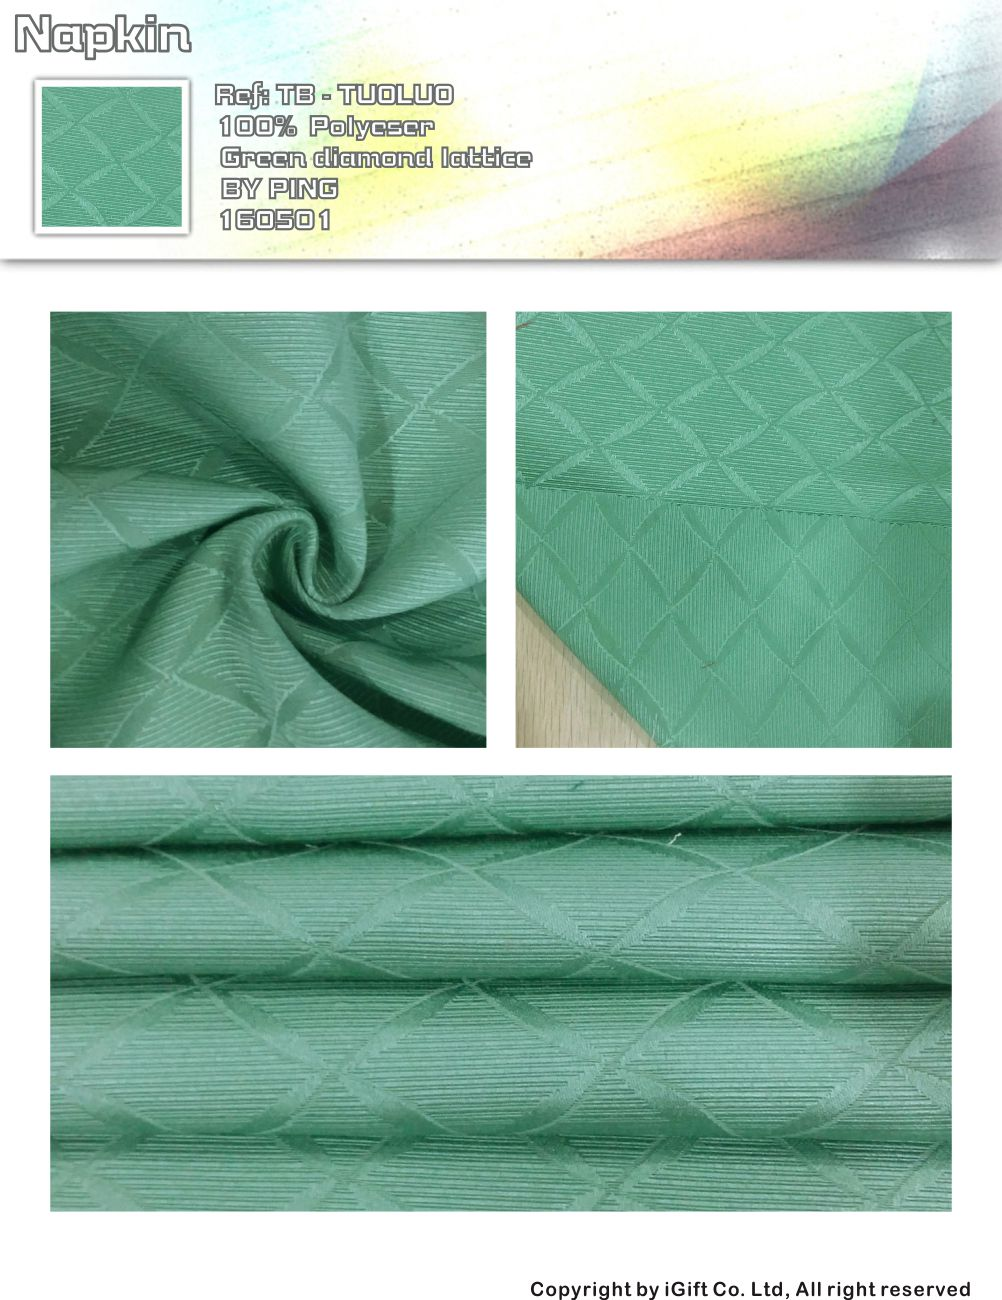 Napkin-green diamond lattice